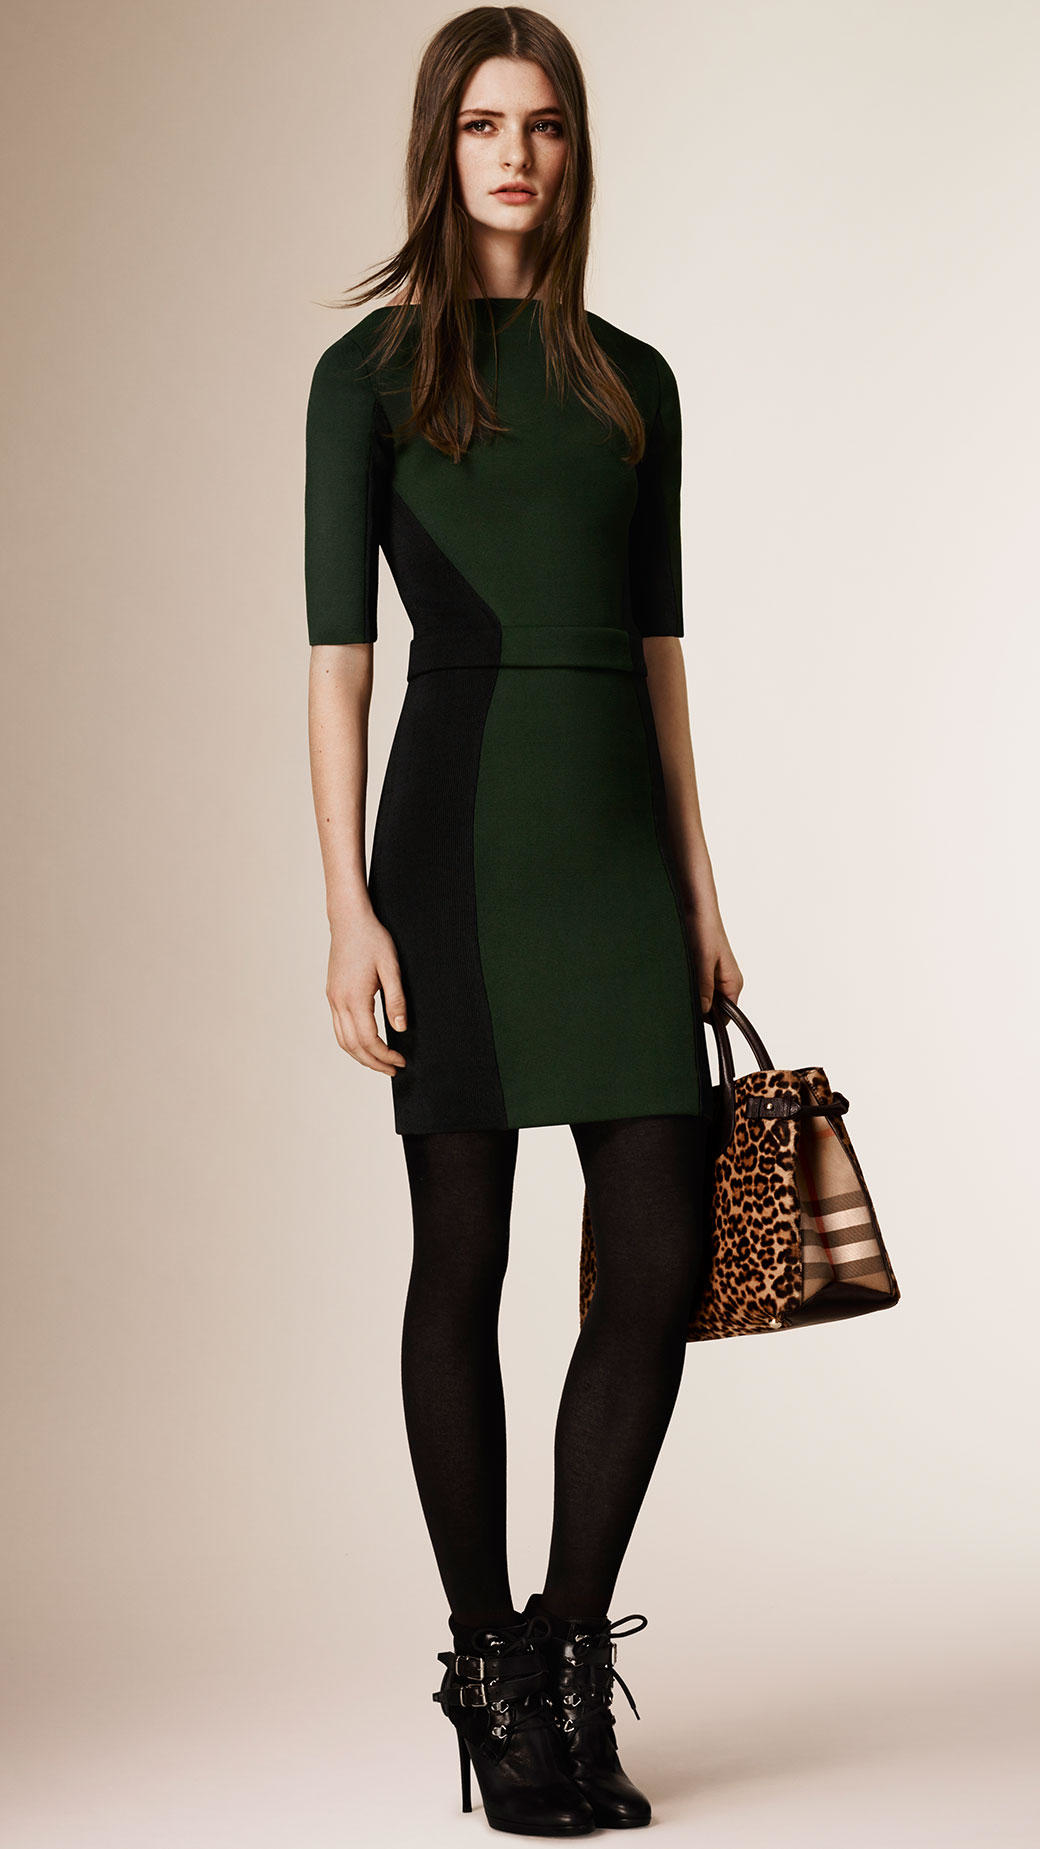 586662be401 Burberry Colour Block Panelled Bodycon Dress in Green - Lyst